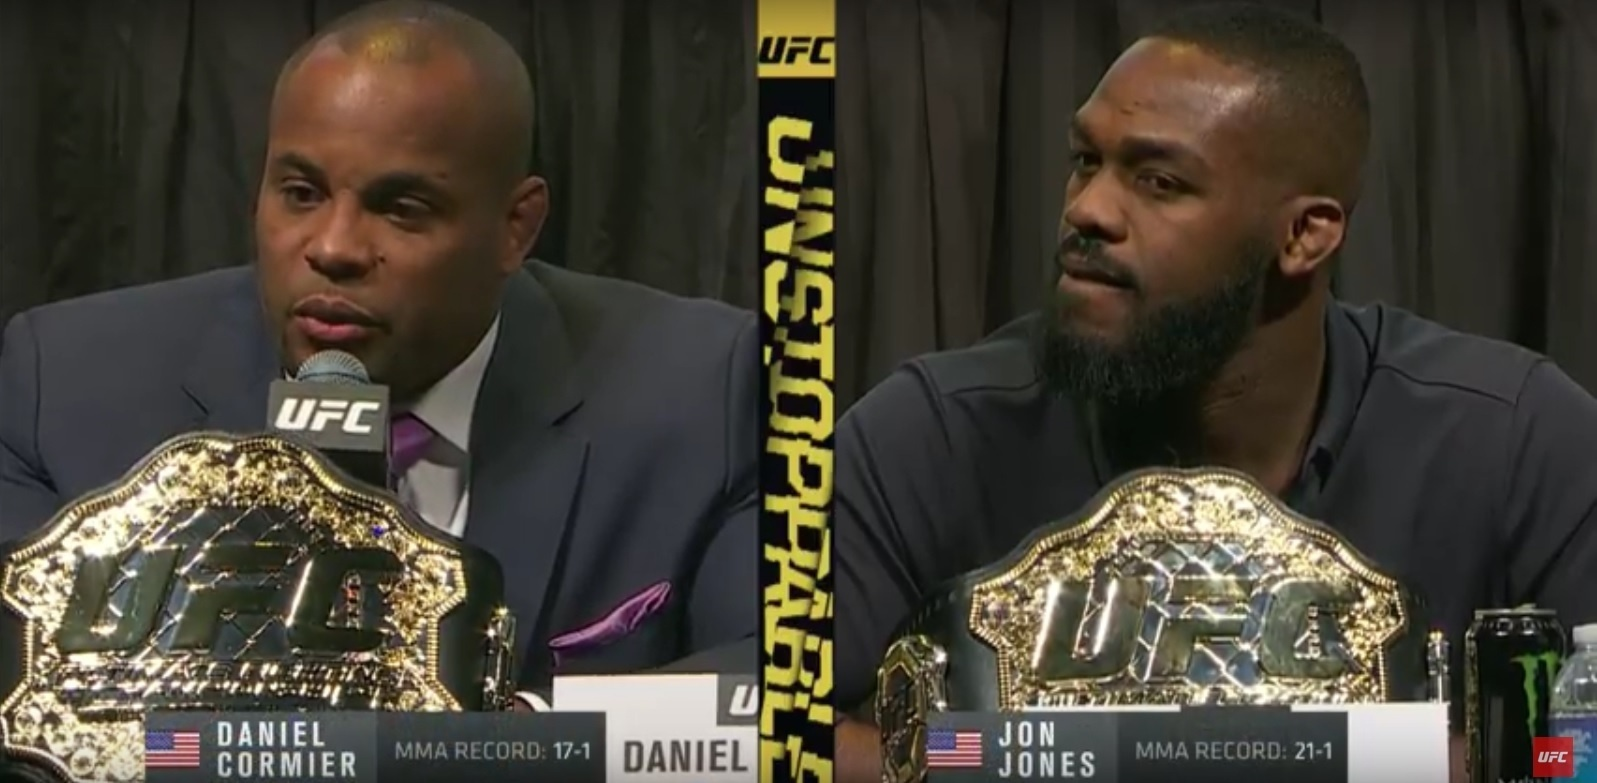 Daniel Cormier e Jon Jones, durante evento do UFC